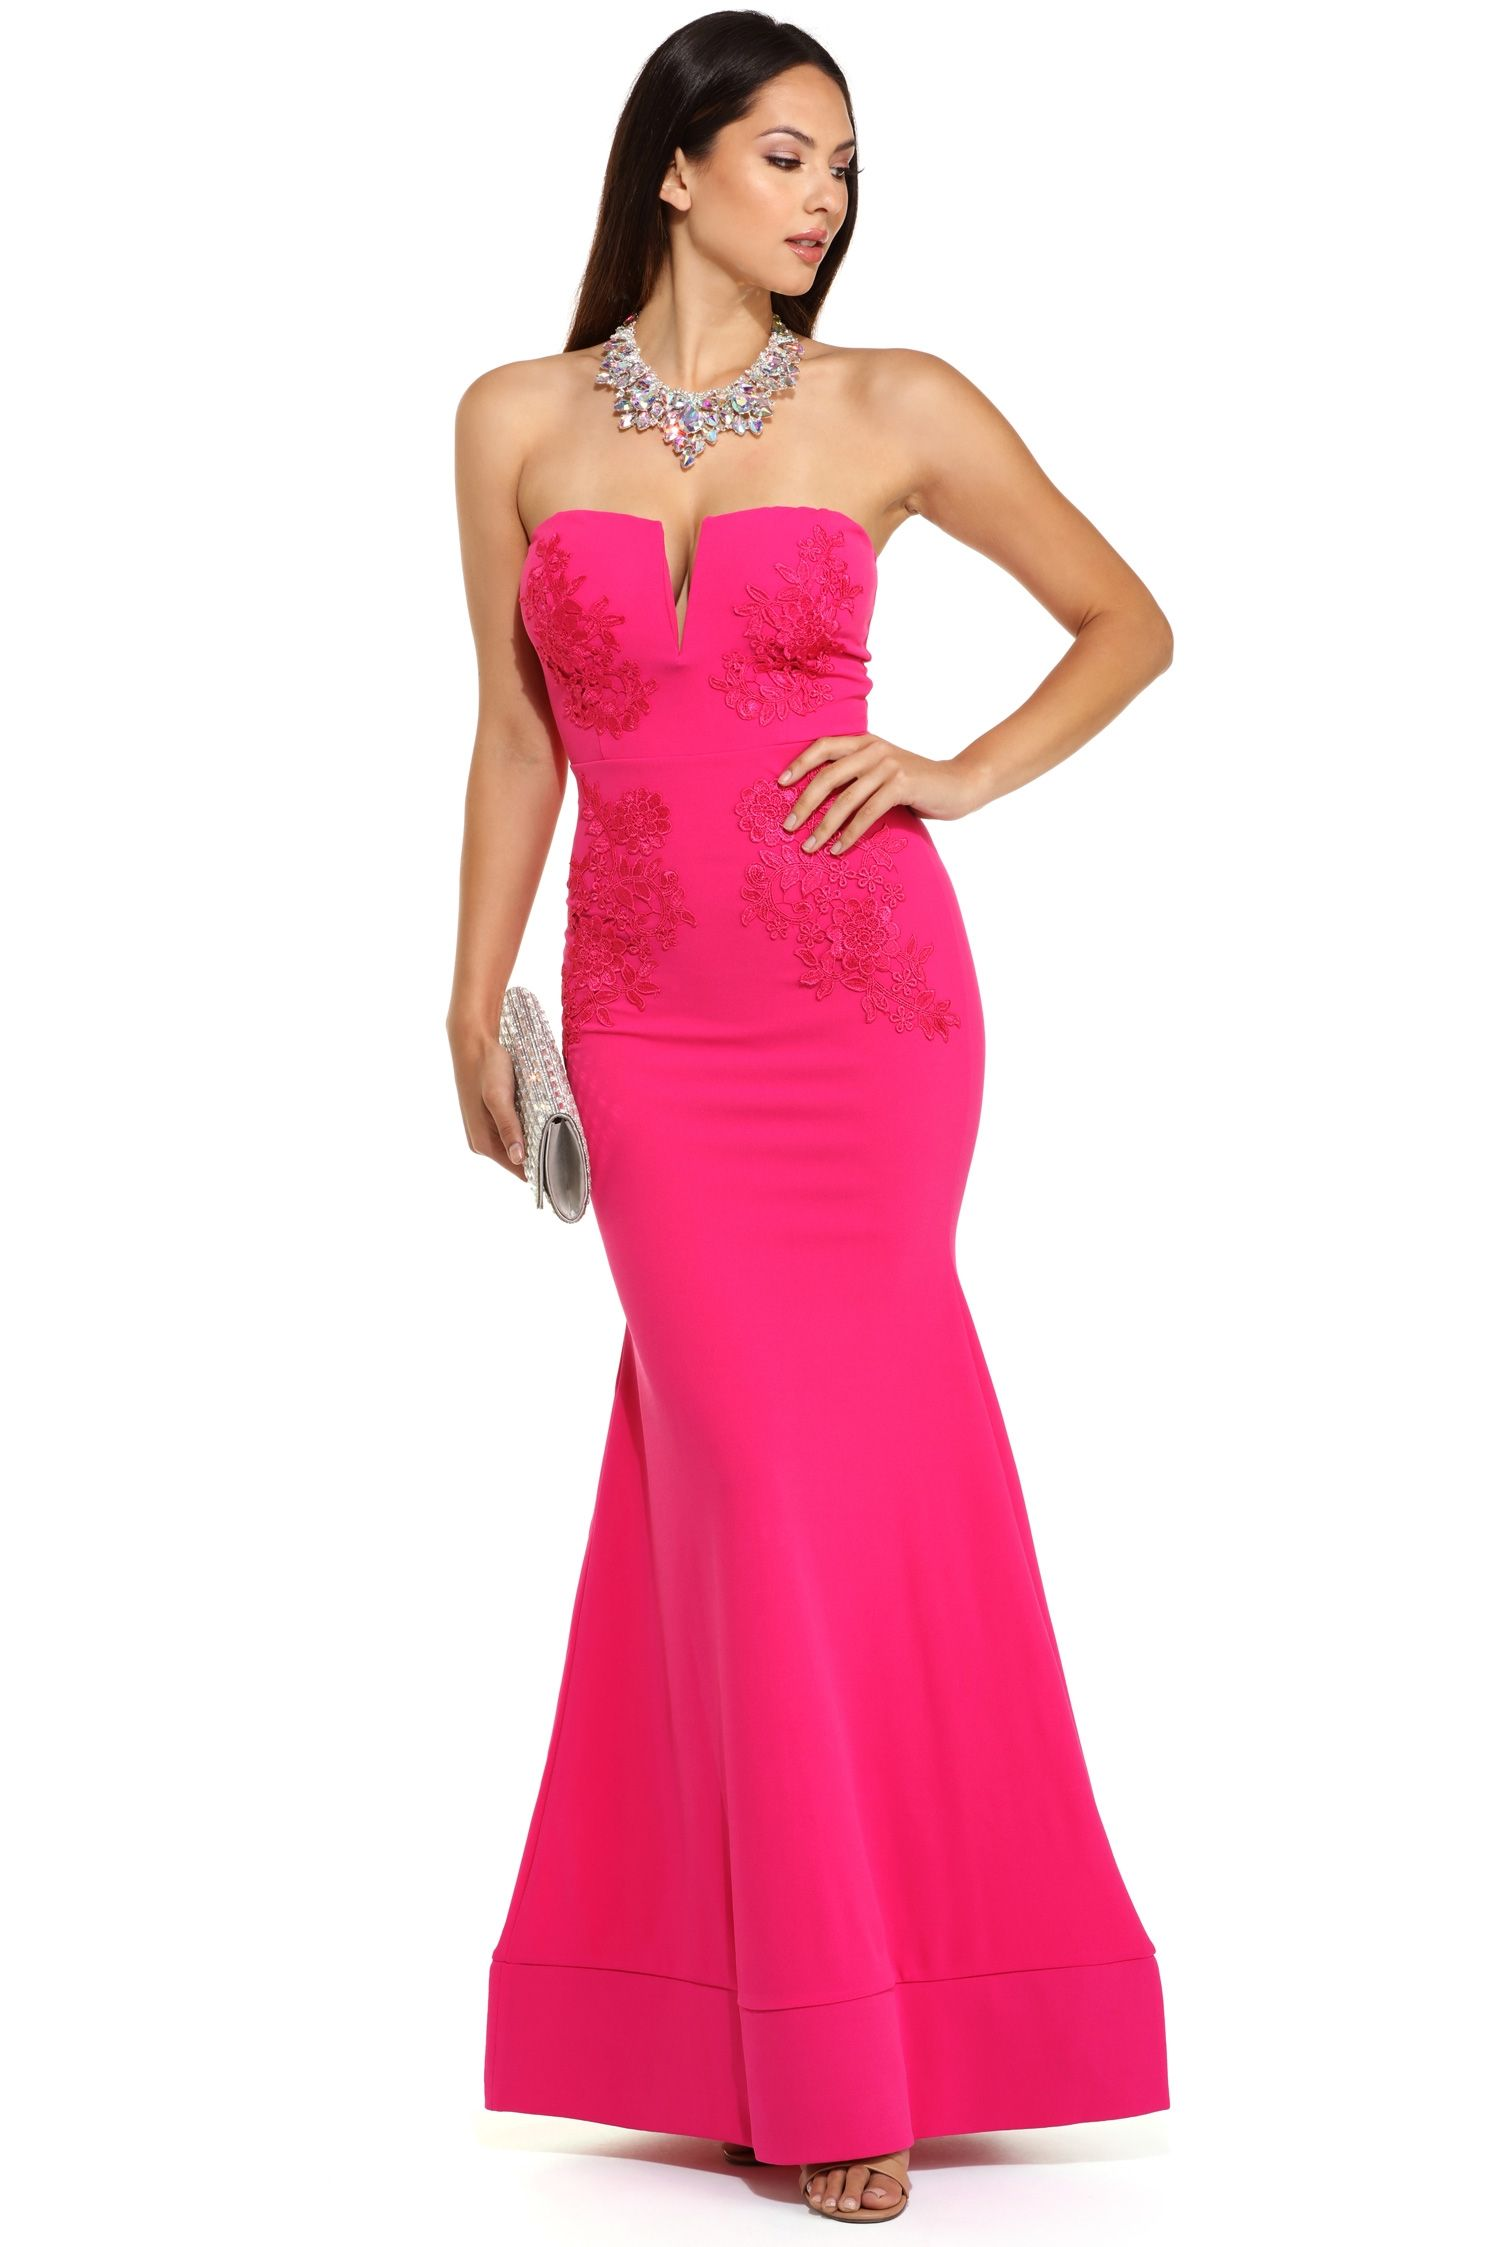 Macy Pink Applique Formal Gown | Windsor | Pinterest | Formal gowns ...